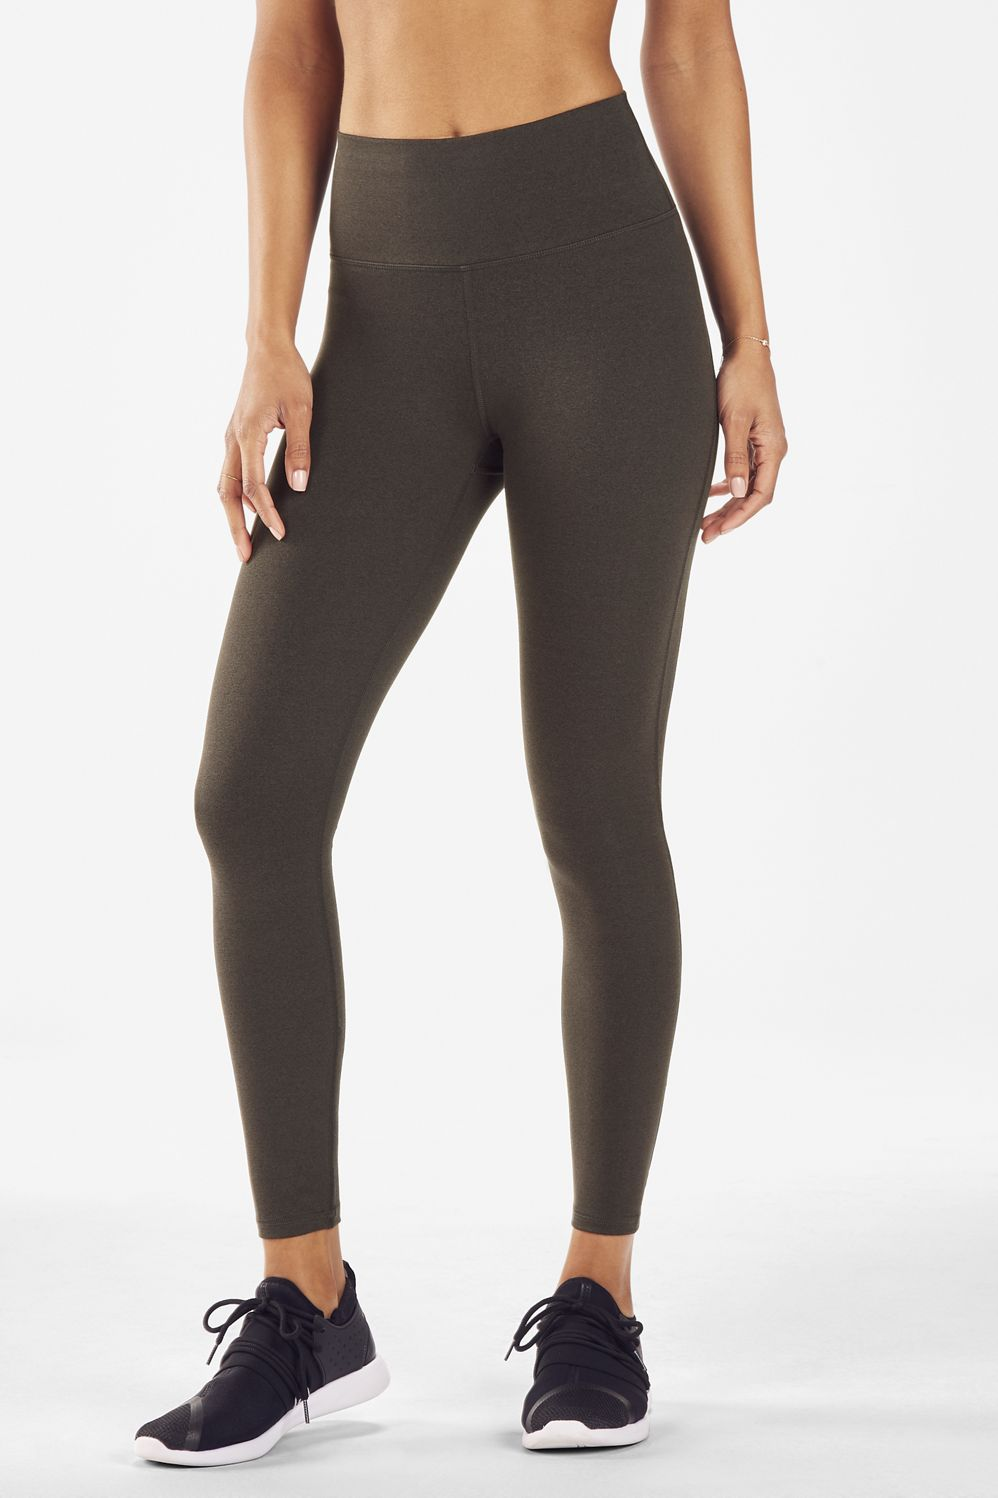 a24ff866342 High-Waisted Solid Heatherknit 7/8 - Charcoal / Heather